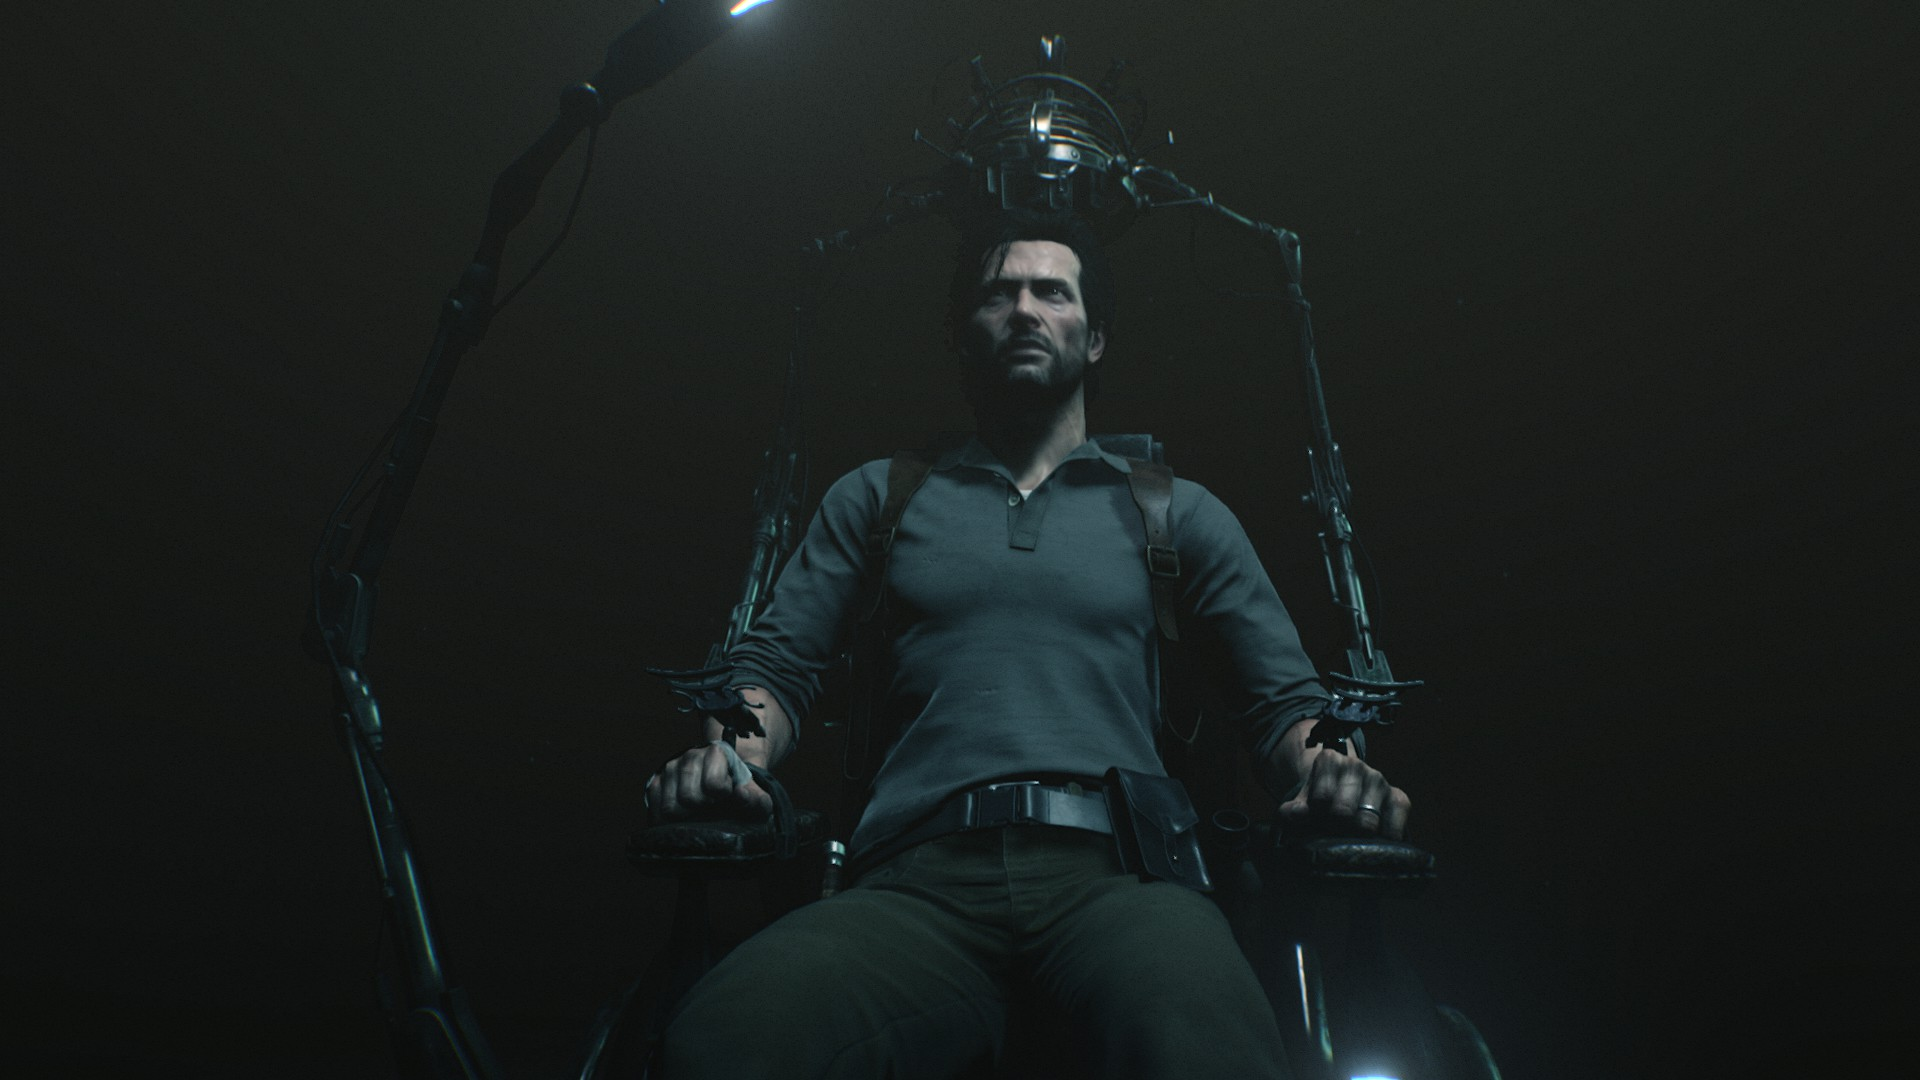 601430_screenshots_20171017024001_2.jpg - Evil Within 2, the